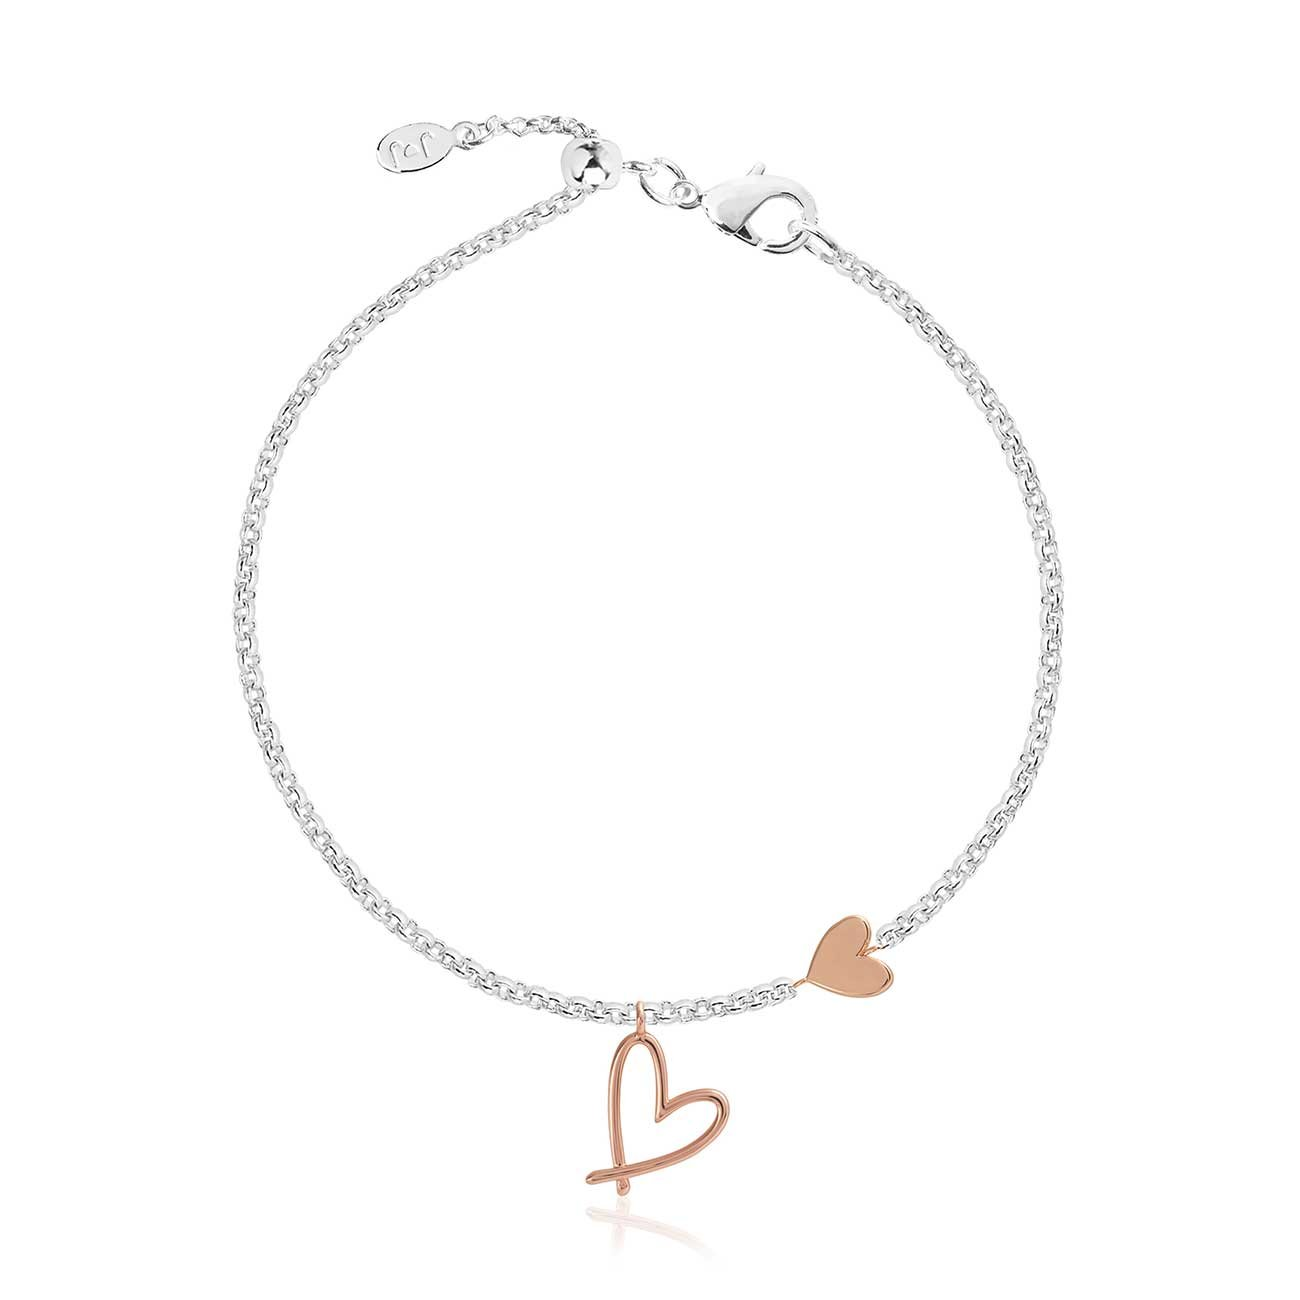 Joma Jewellery Florrie Heart Bracelet | More Than Just A Gift | Authorised Joma Jewellery Stockist| More Than Just A Gift